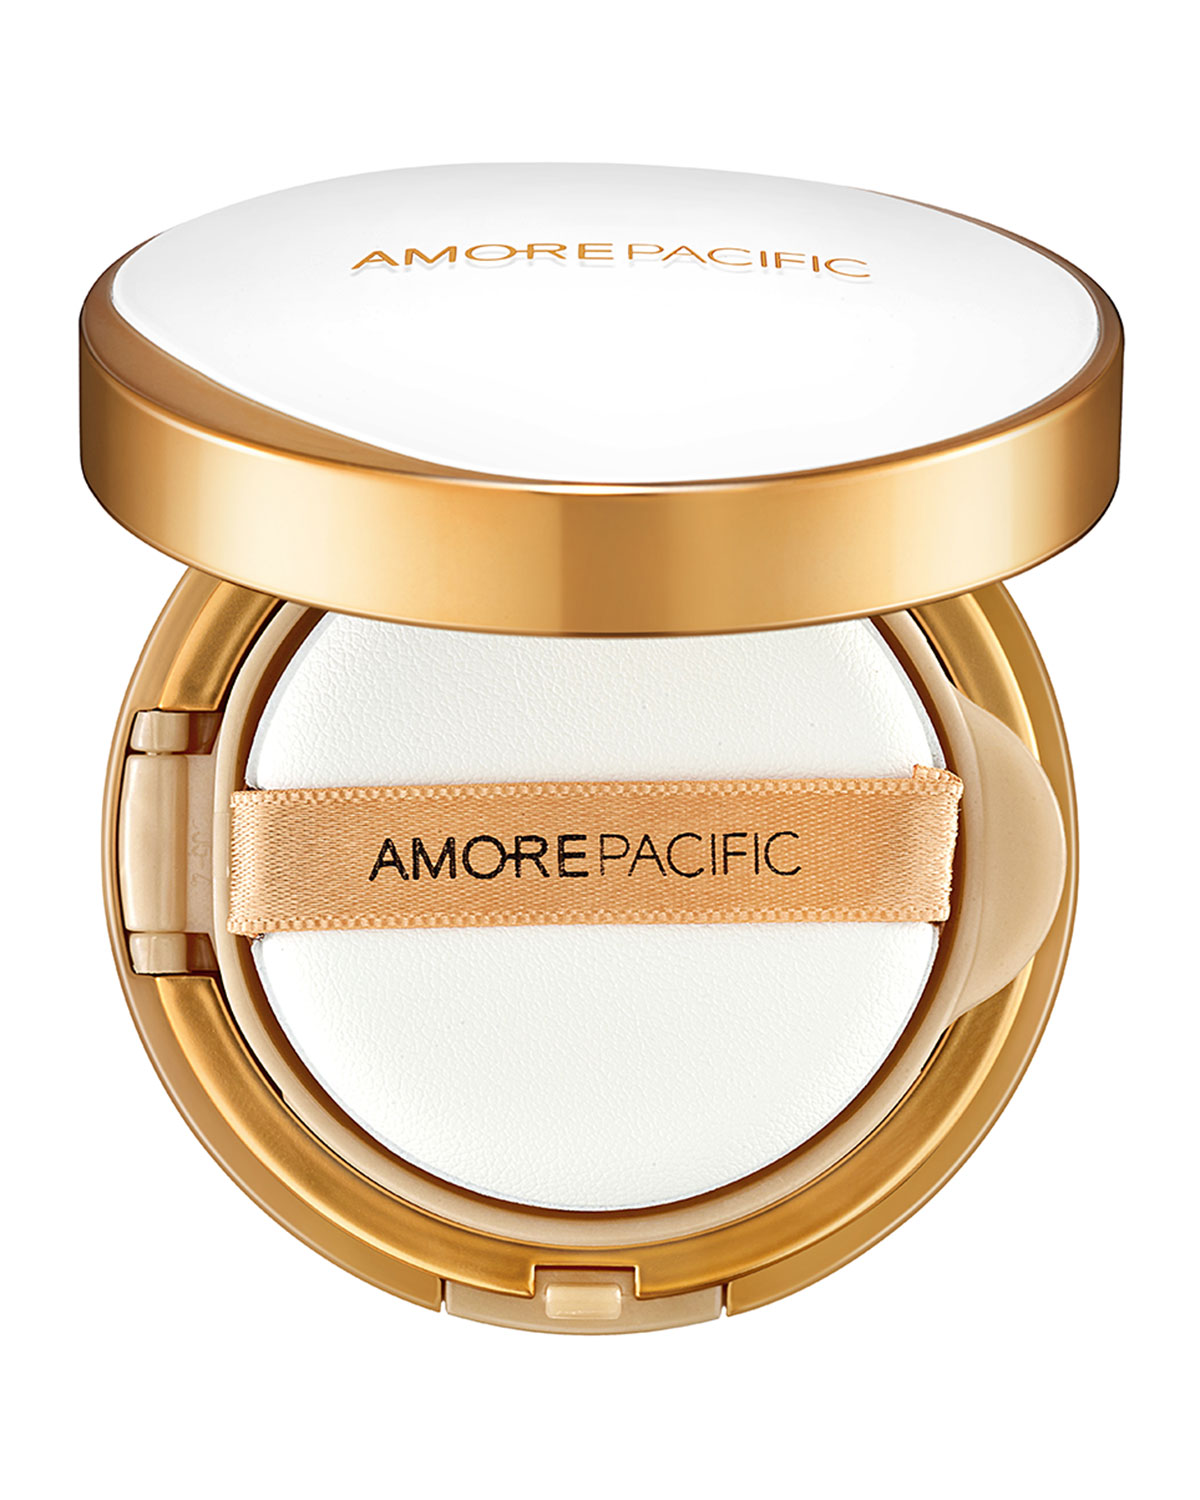 AMOREPACIFIC Resort Collection Sun Protection Cushion Broad Spectrum Spf 30+